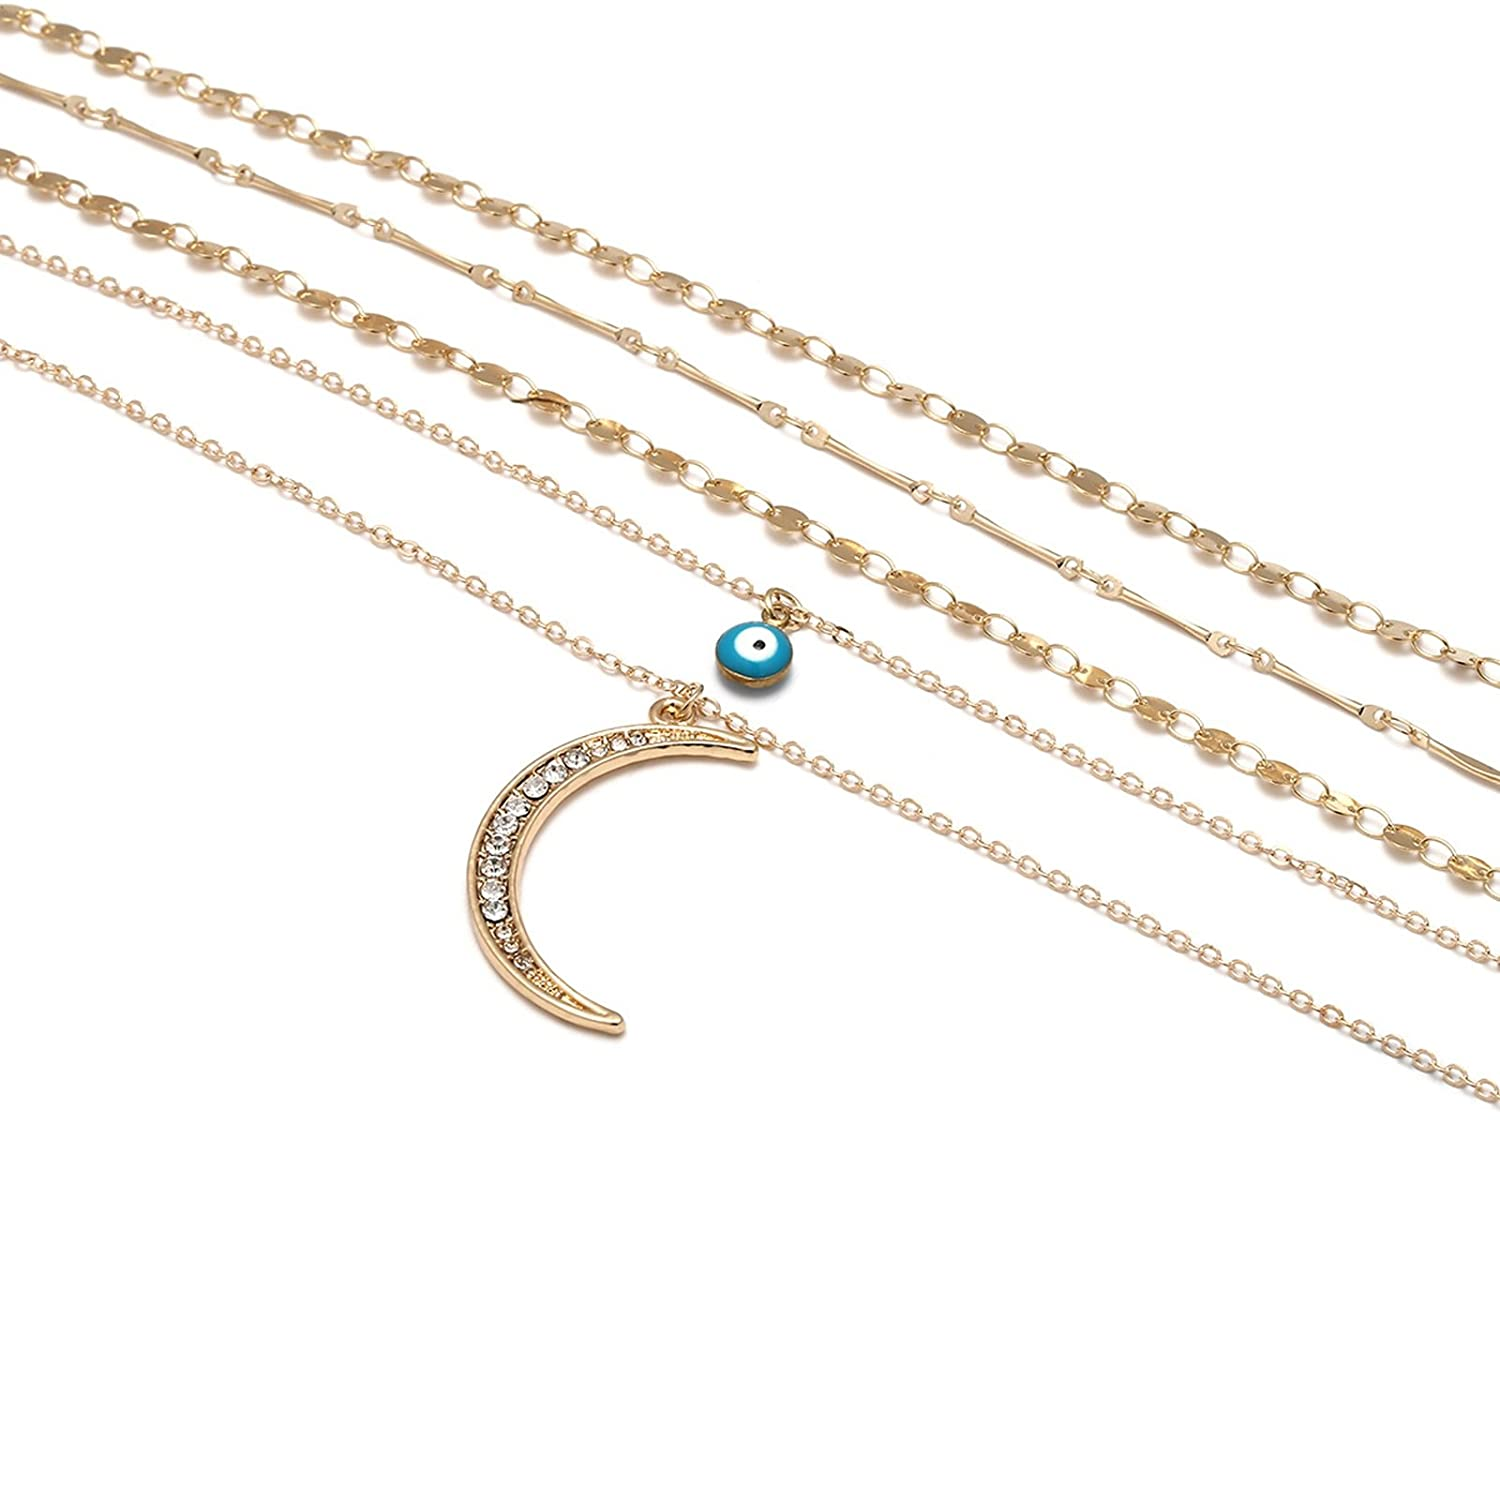 Bishilin Gold Necklace for WomenClavicle Necklace Choker Multilayer Pendant Chain Sequins Chain Cubic Zirconia Moon Eye